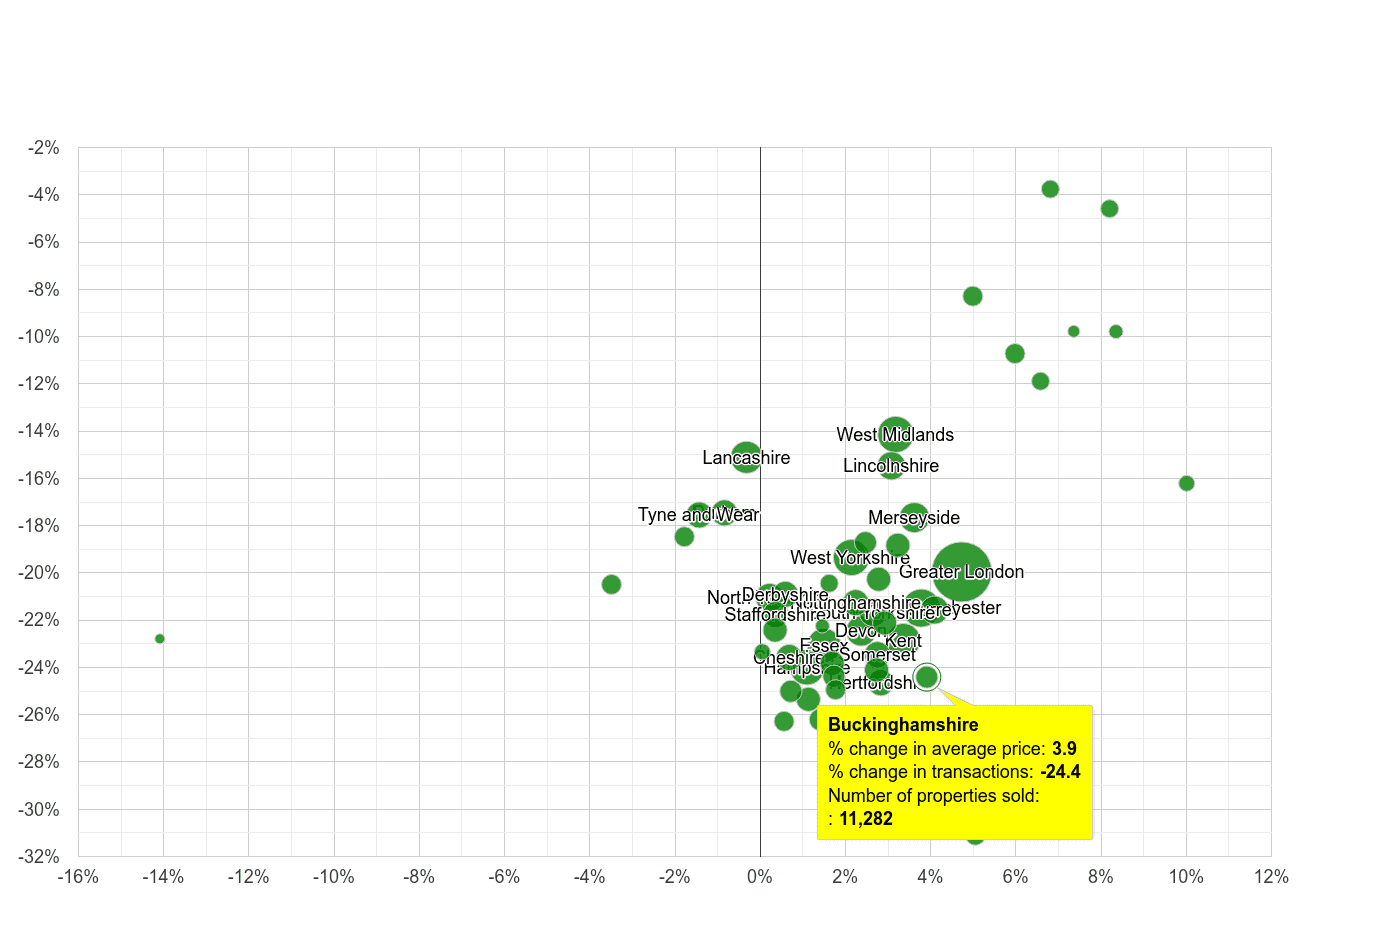 Buckinghamshire property price and sales volume change relative to other counties